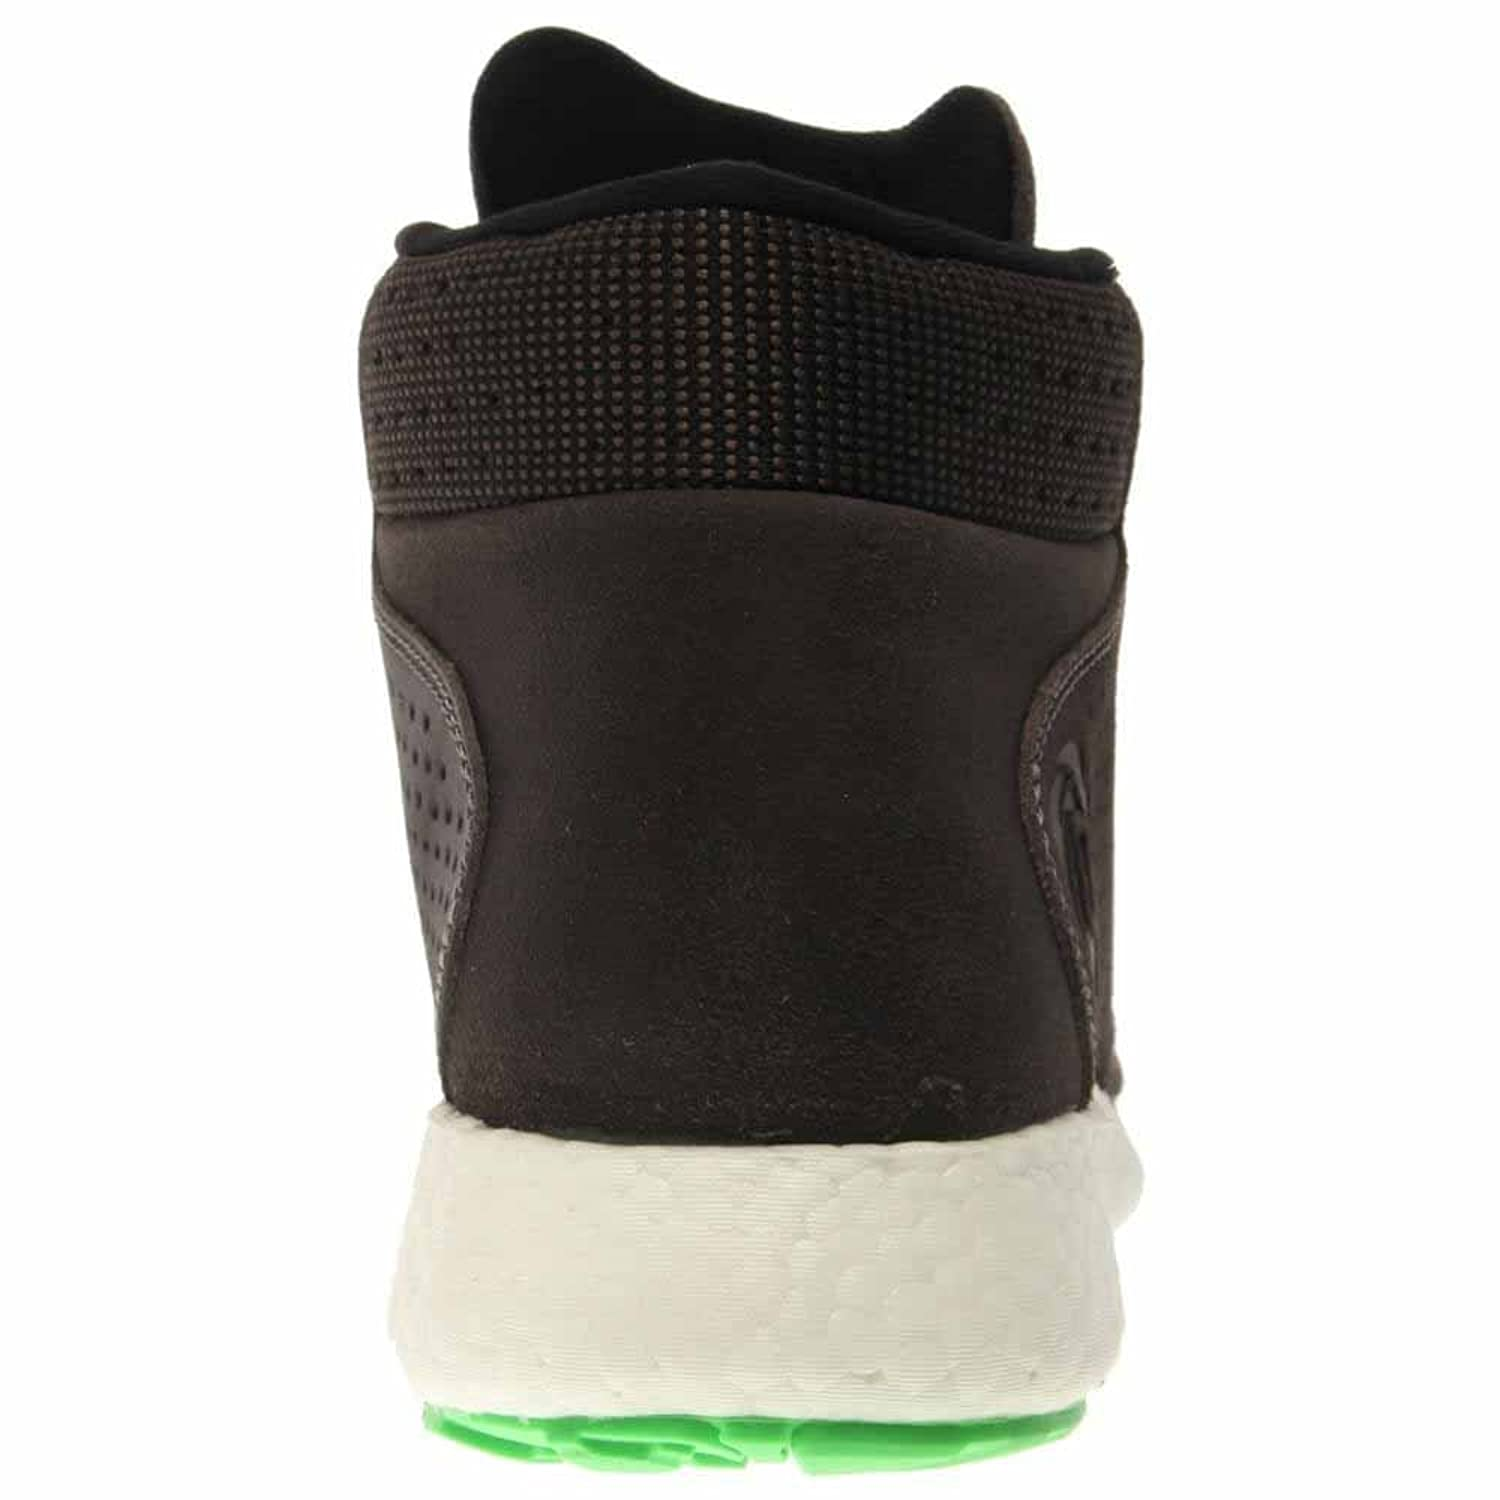 Adidas Rose D Boost Mi Rives Du Lac rR69wHY1H